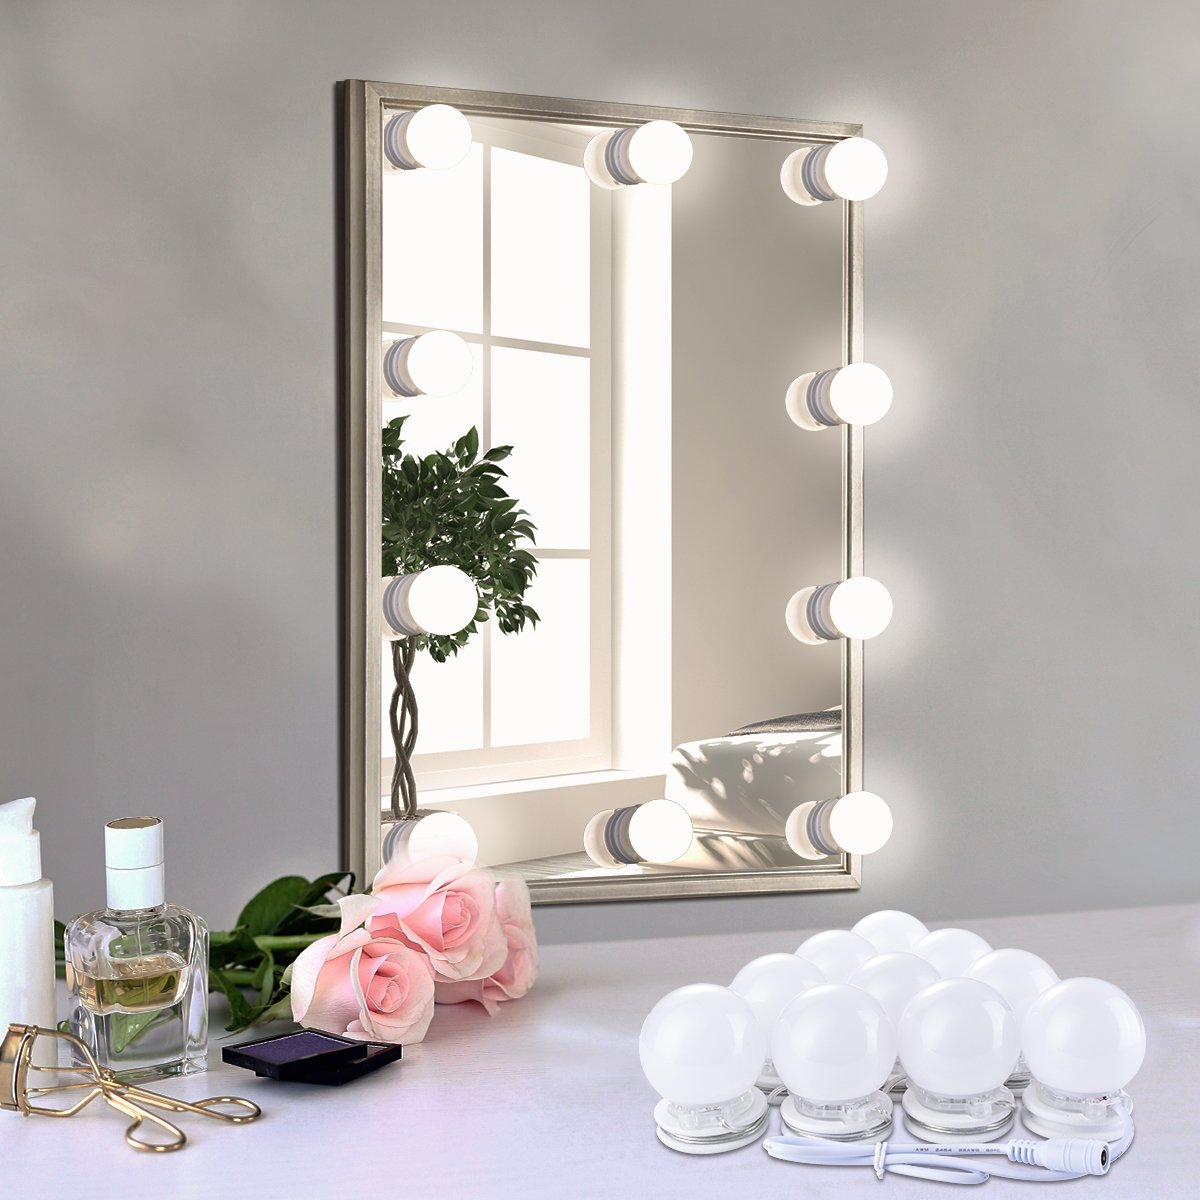 Arioj Hollywood Style LED Vanity Lights Makeup Fill Light Adjustable Light with Touch Dimmer,Lighting Fixture Strip for Dressing Table,Bathroom(Mirror Not Include)